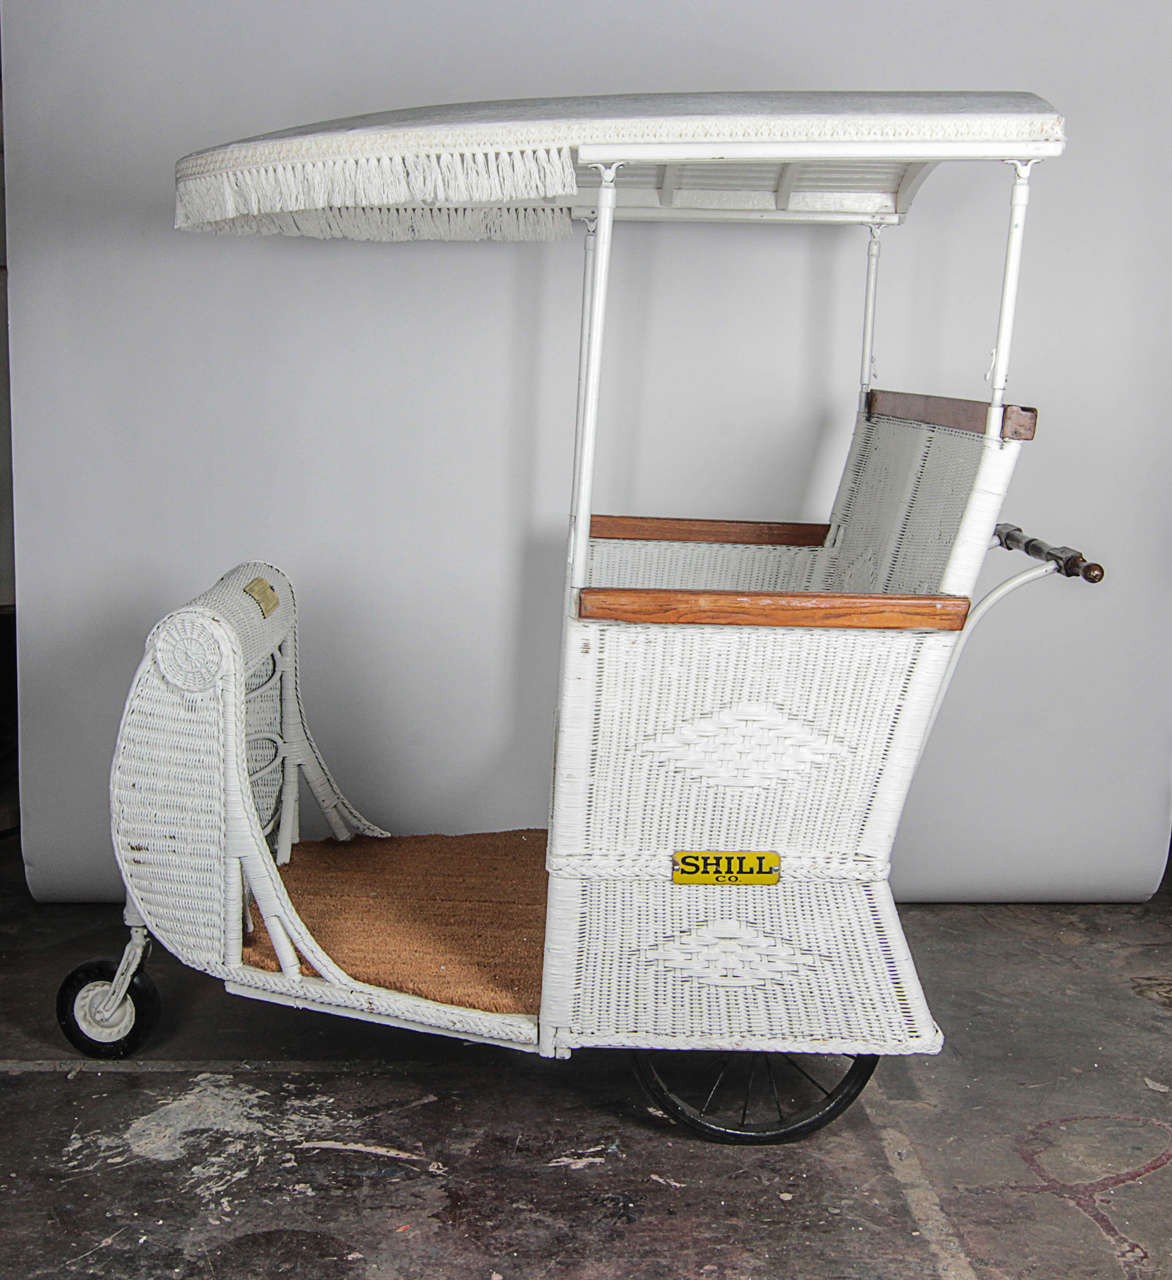 Atlantic City Wicker Rolling Chair 217 by Shill For Sale at 1stdibs